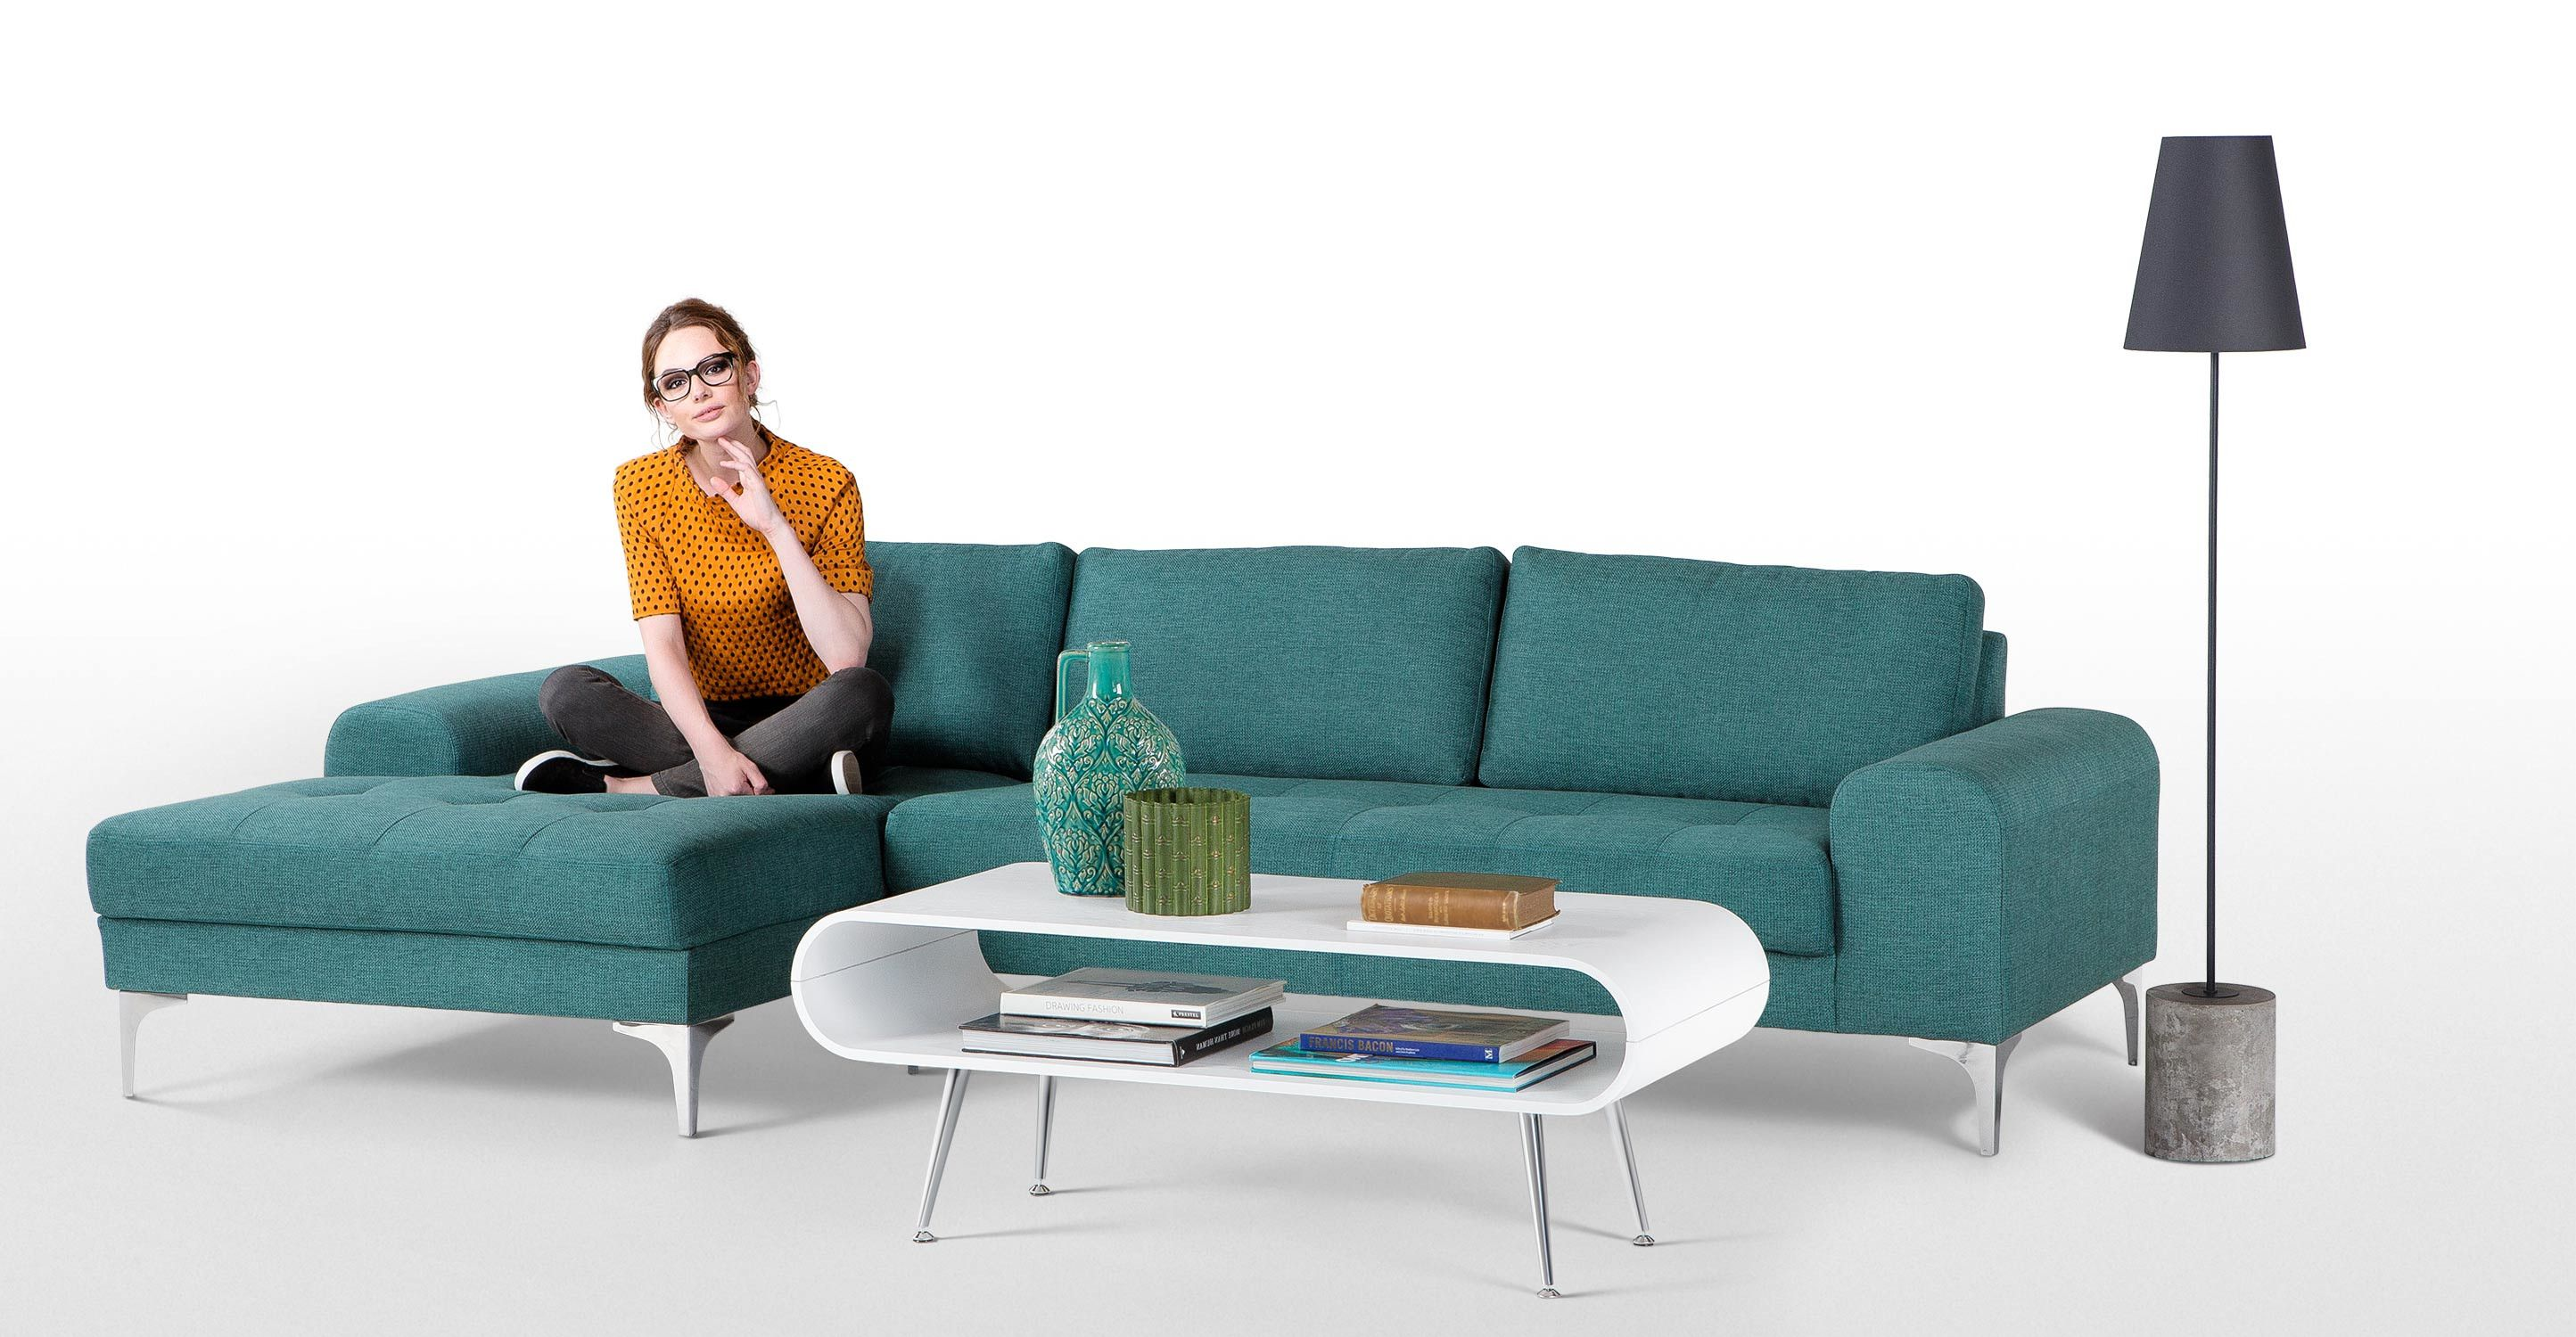 Snuggle Up Or Stretch Out The Vittorio Corner Sofa Comfortably